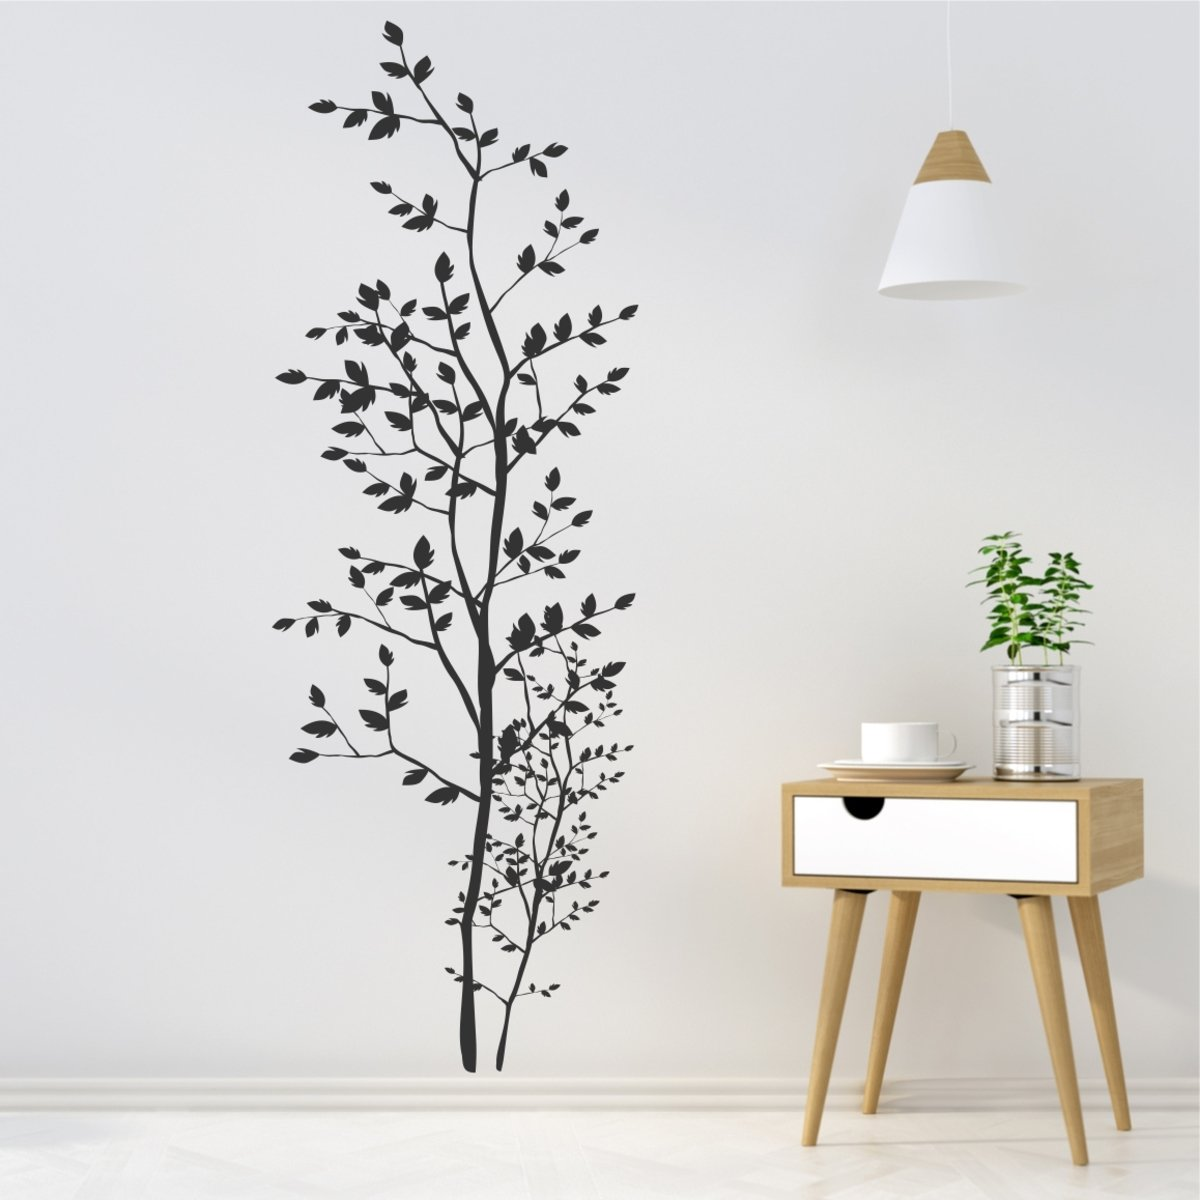 greenluup wandtattoo baum wandtattoo ast baum unbestimmt. Black Bedroom Furniture Sets. Home Design Ideas